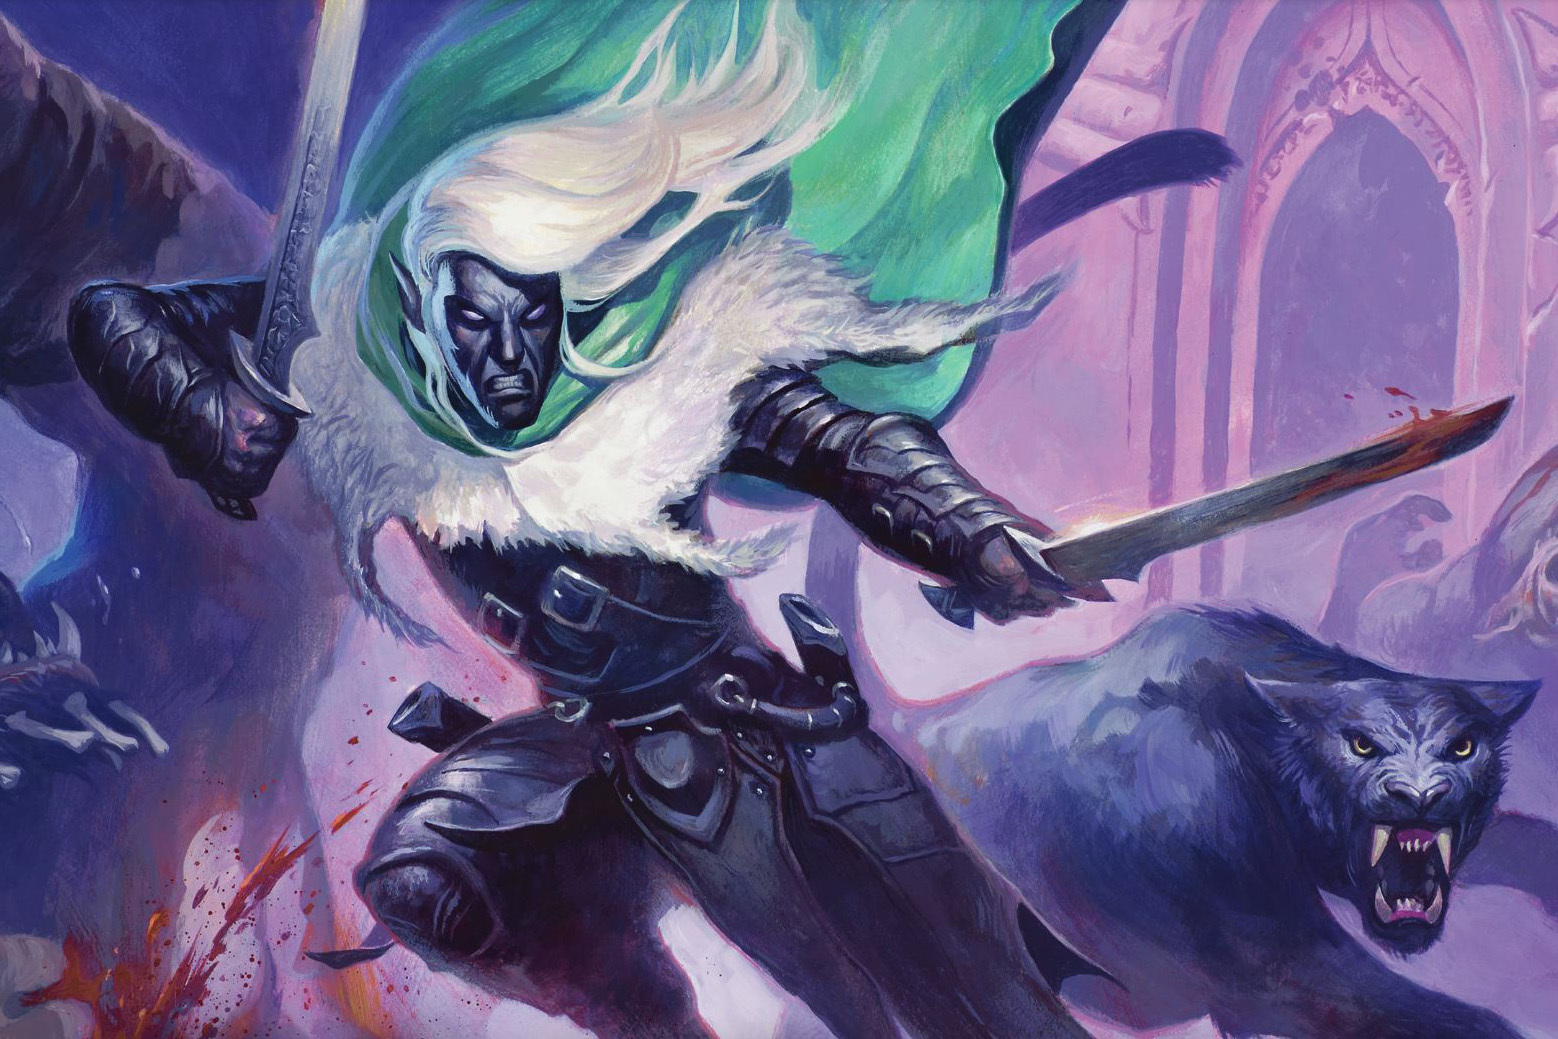 Drizzt and his panther leap into battle, blades and teeth flashing.